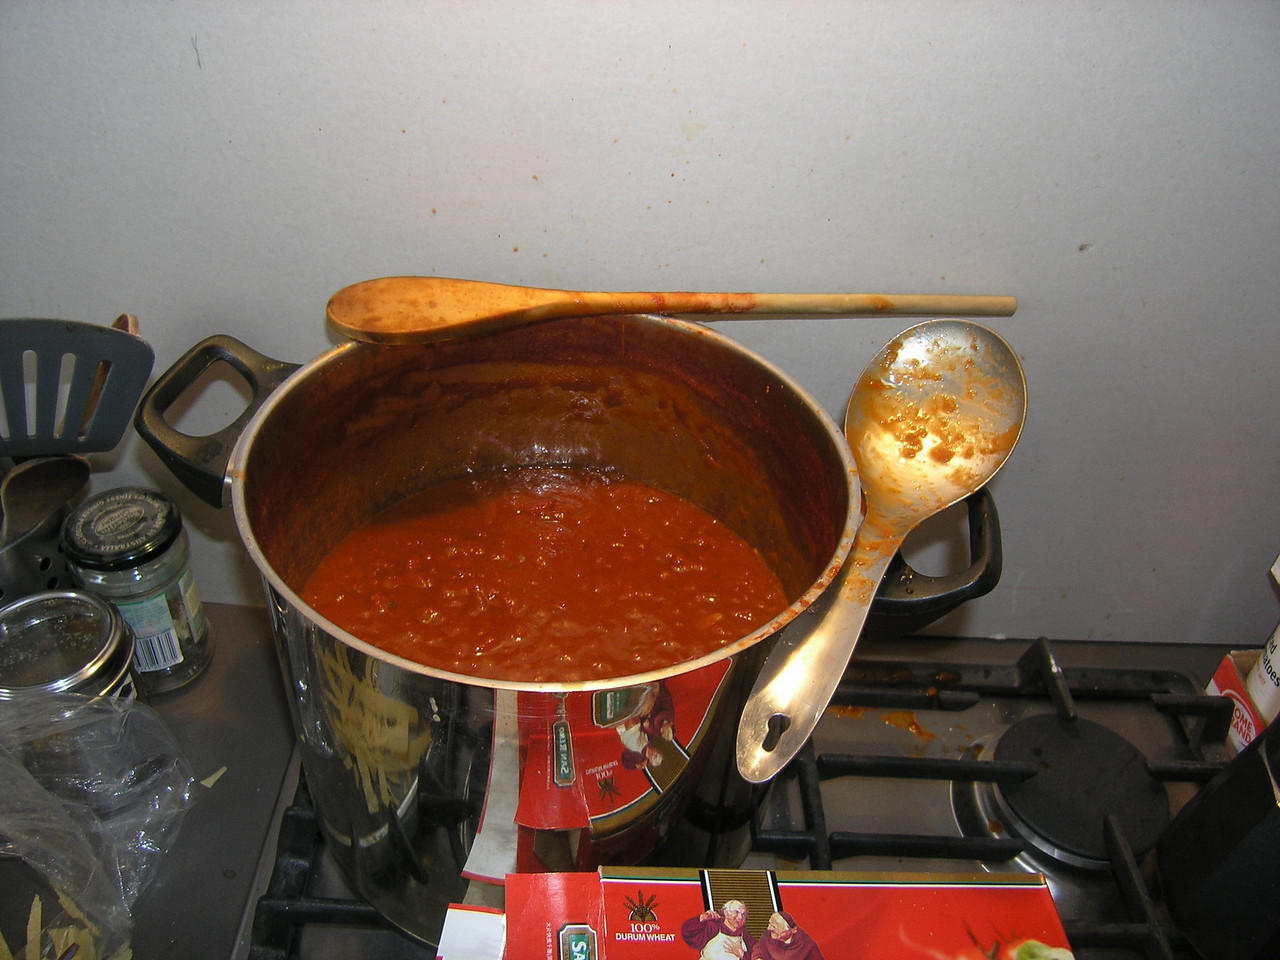 Giant pot of pasta sauce